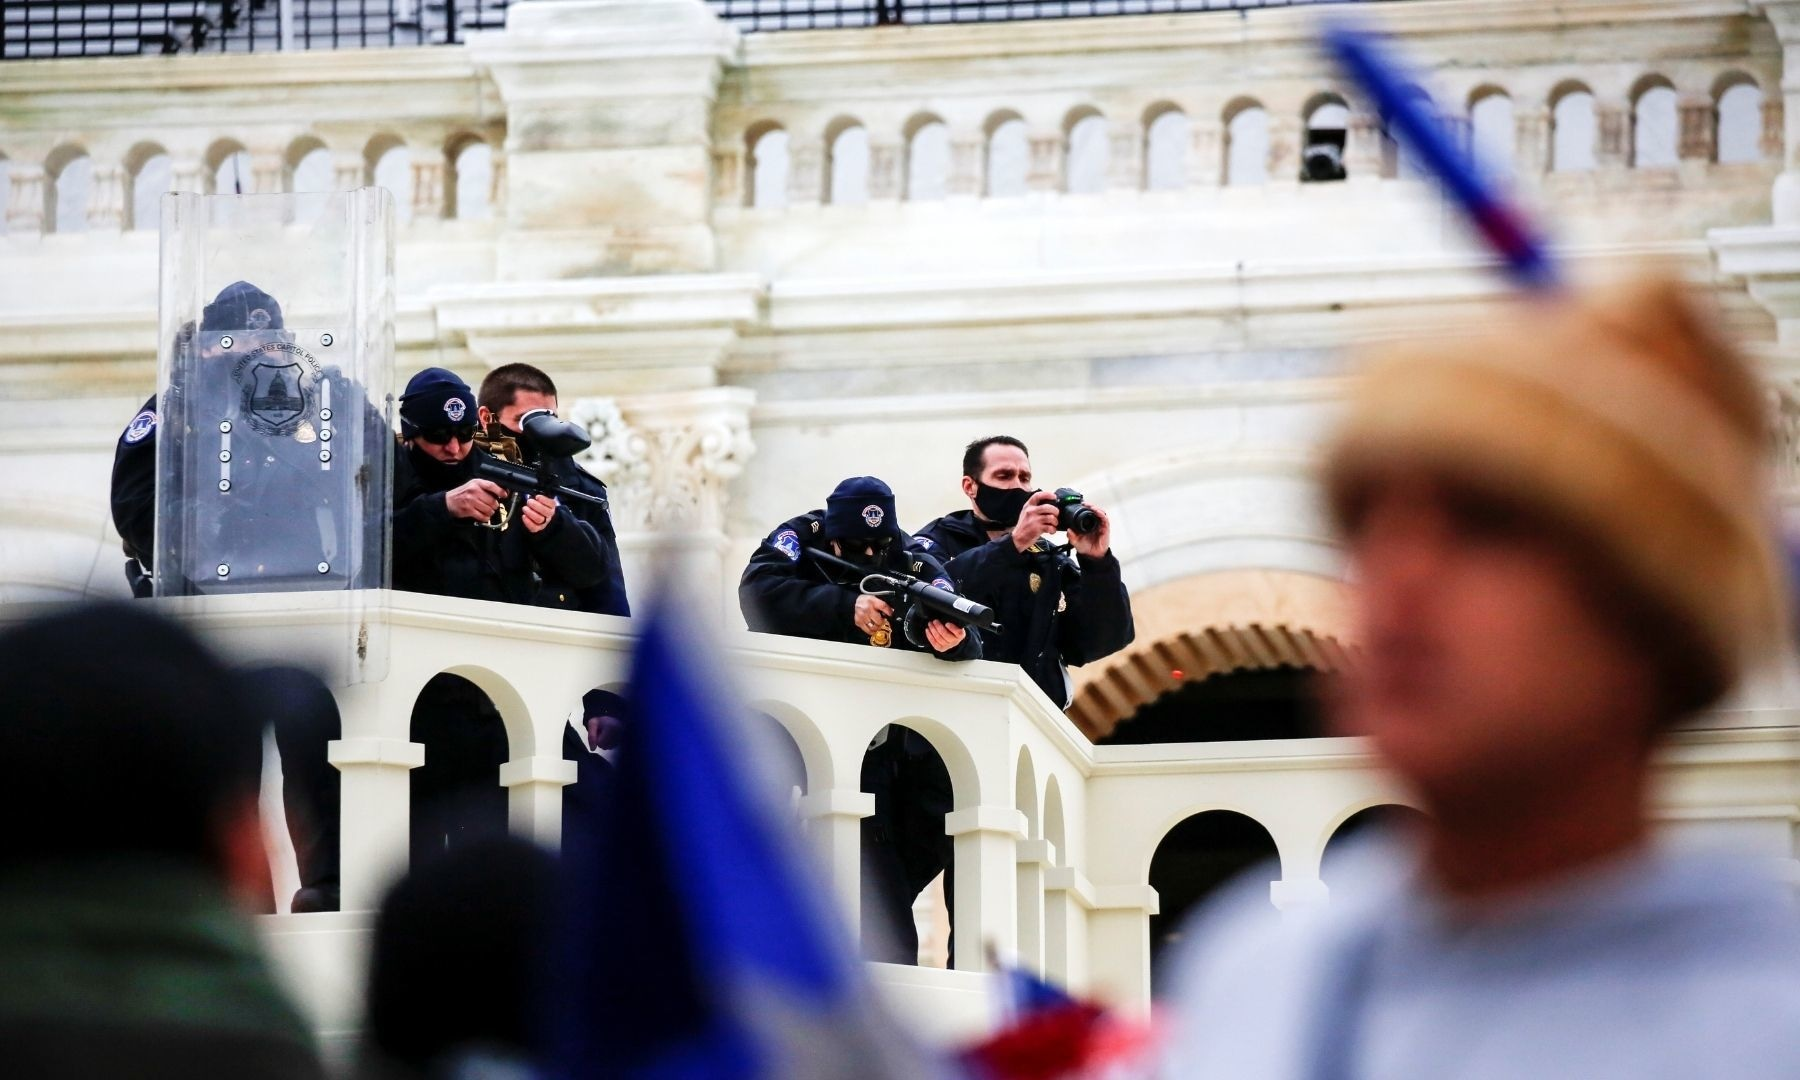 Law enforcement officers aim less-lethal weapons towards supporters of President Donald Trump at the US Capitol. — Reuters